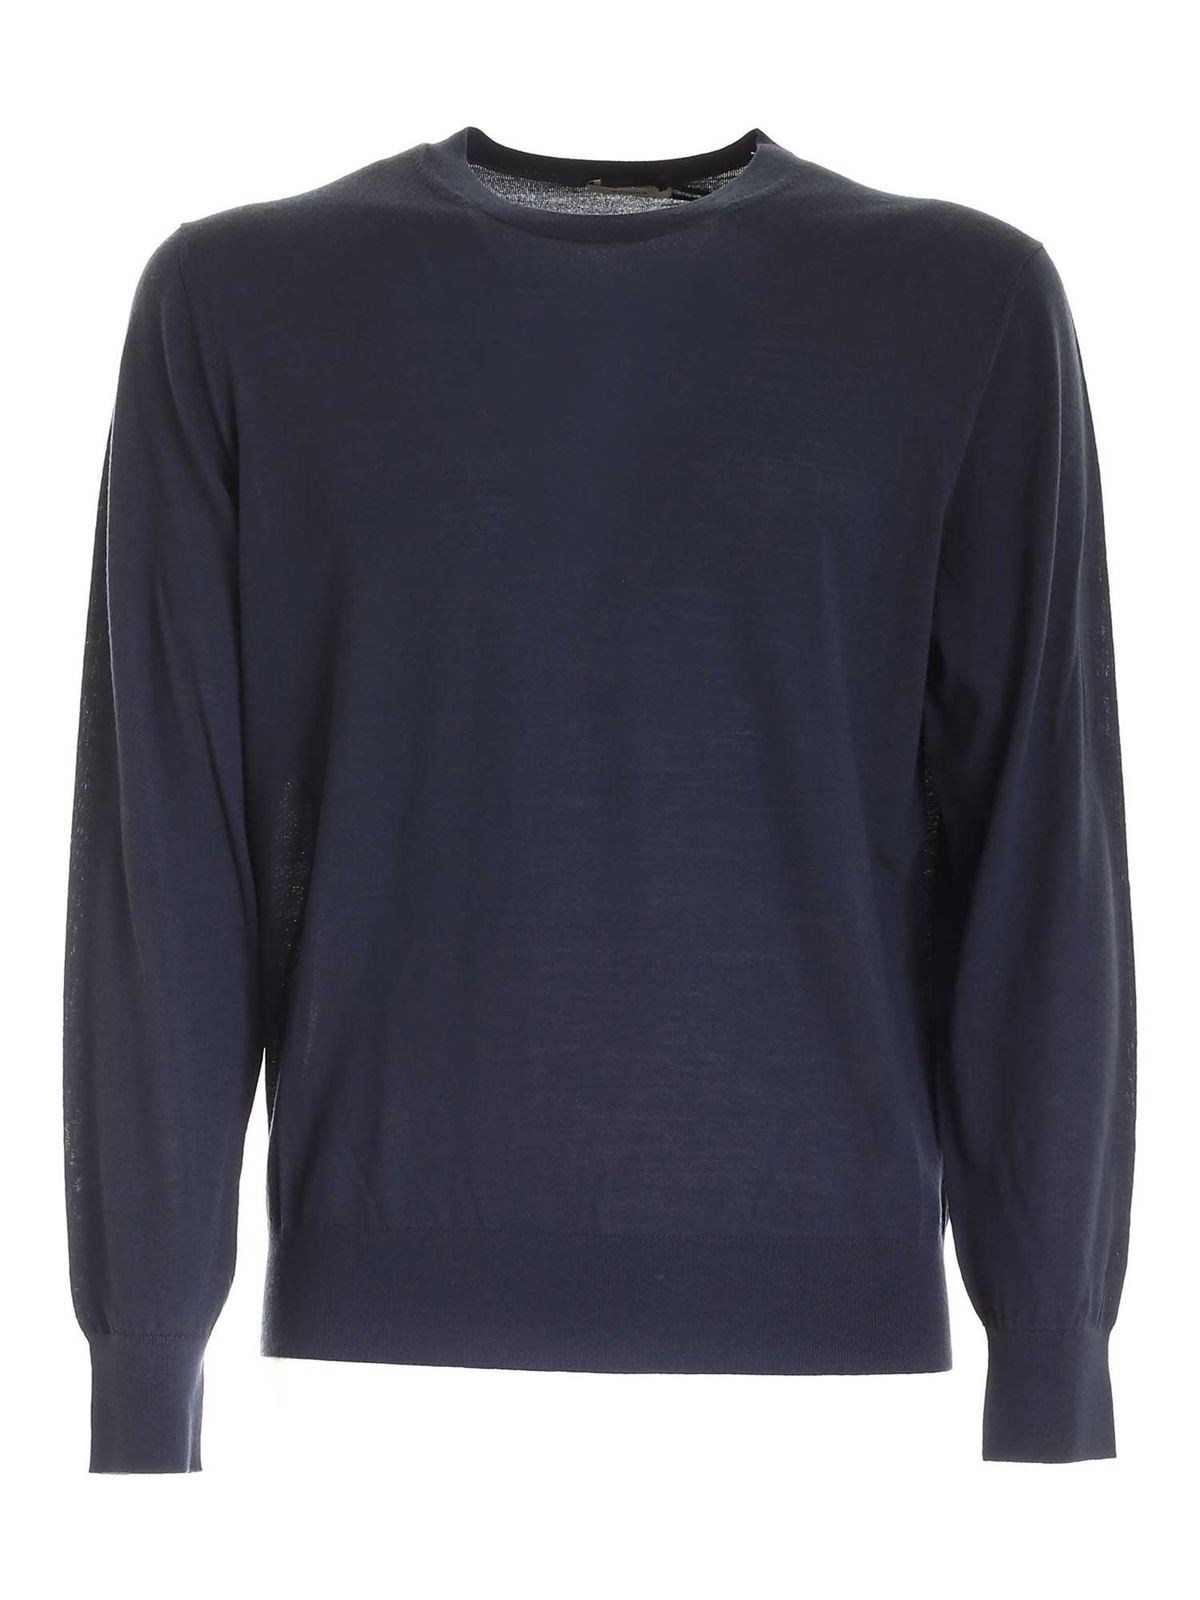 Z Zegna Clothing CREWNECK PULLOVER IN BLUE